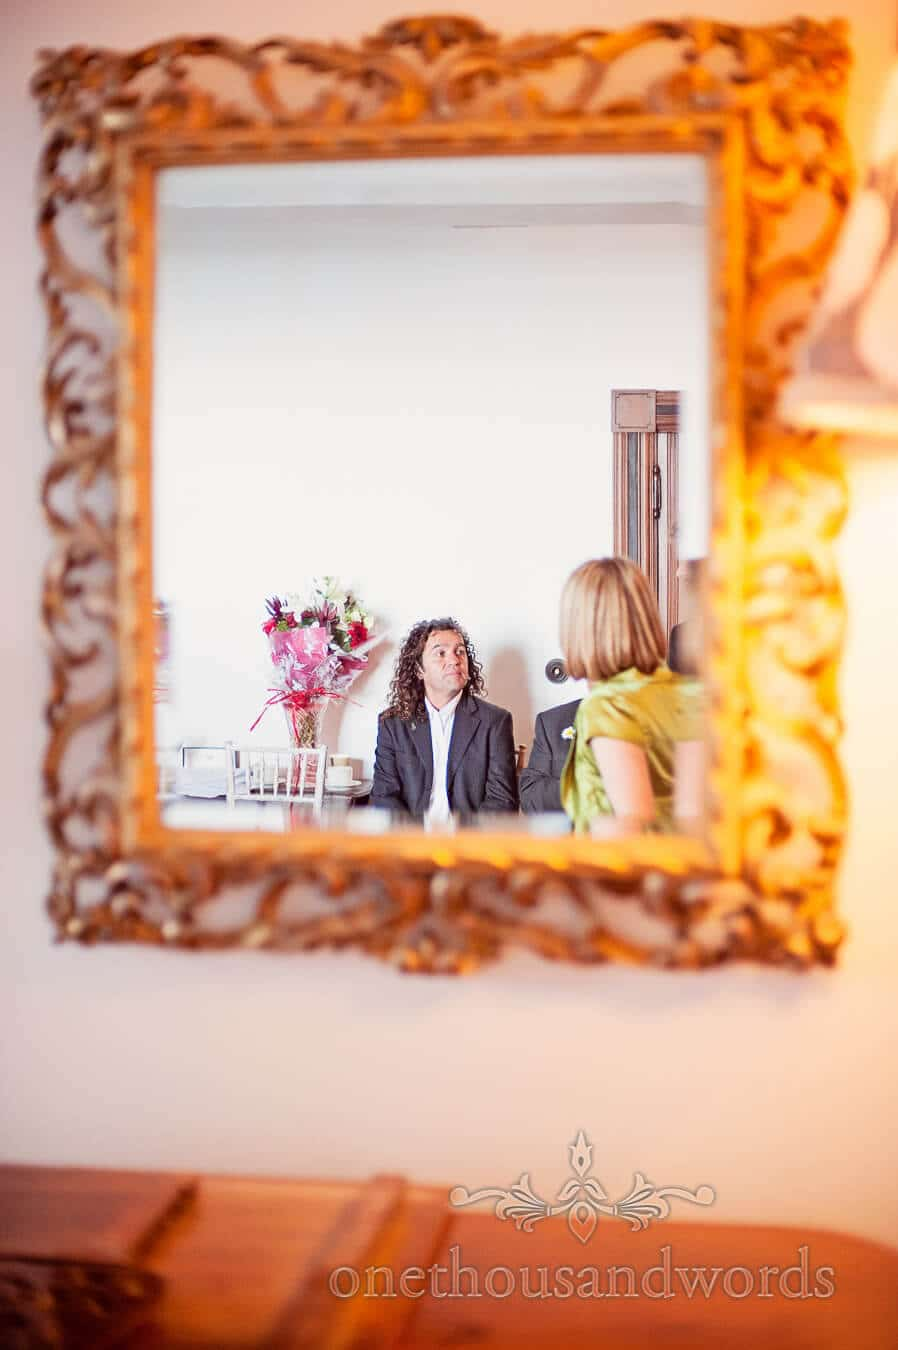 Wedding guest framed in mirror at Prussia Cove Wedding